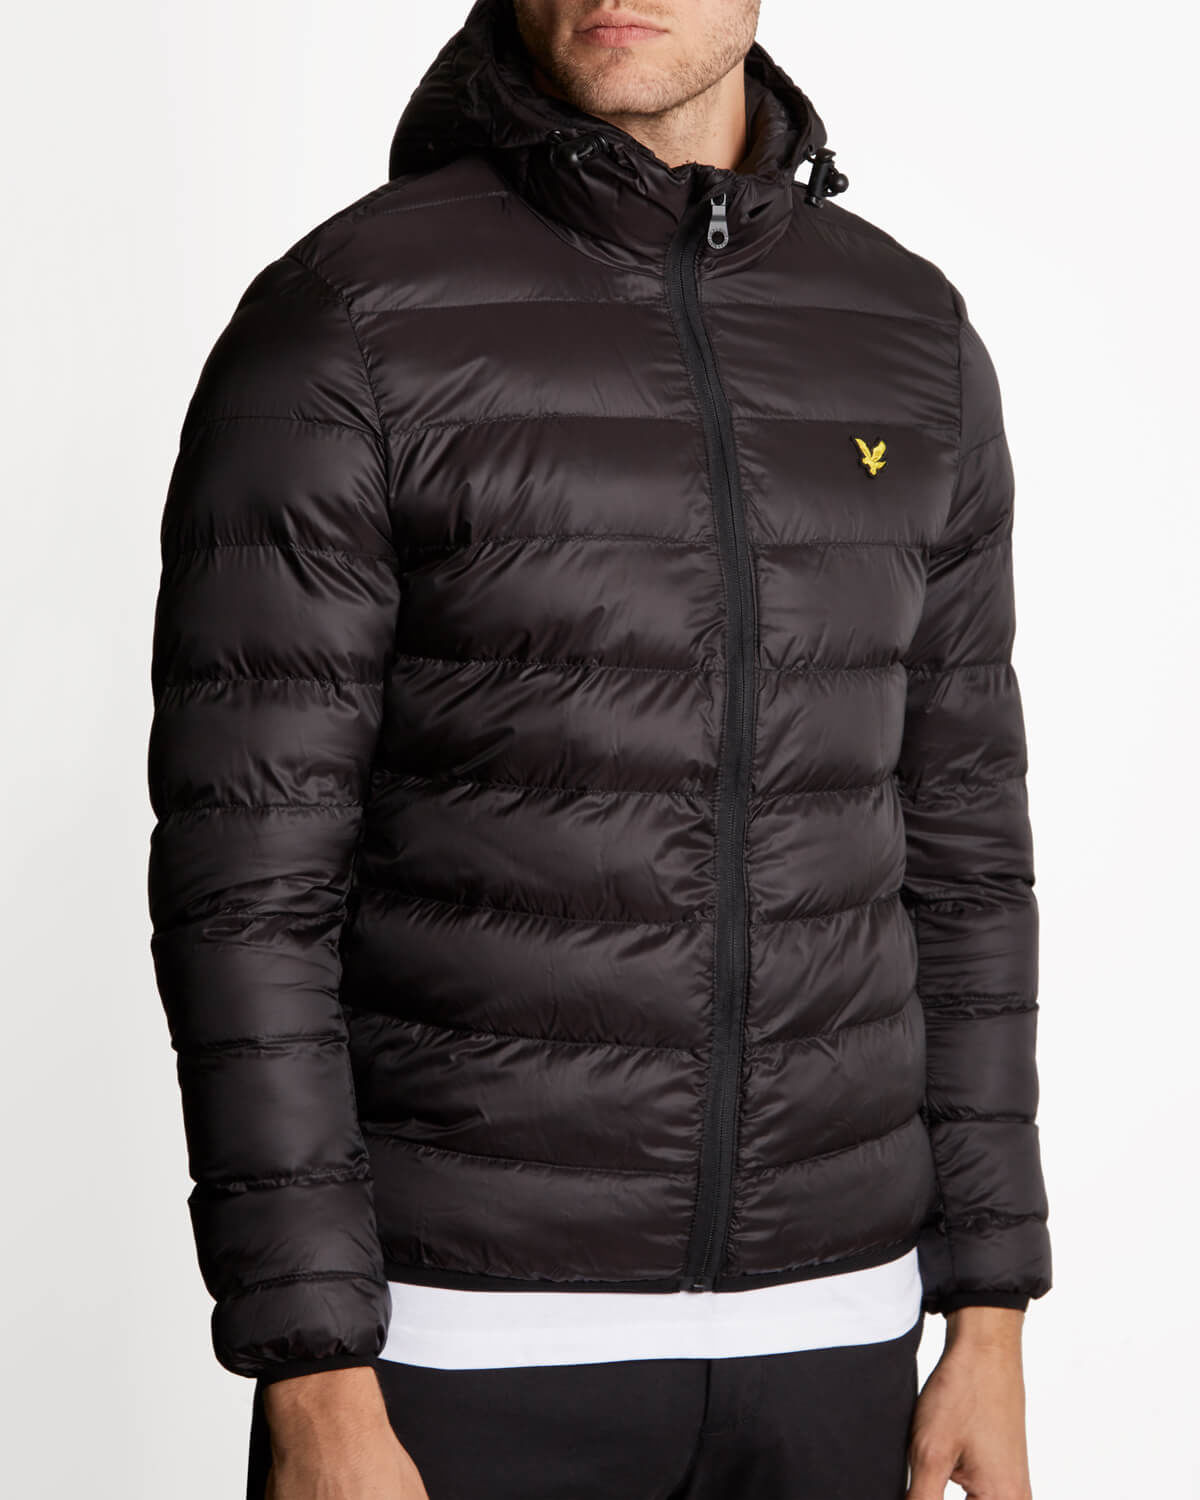 Lyle and Scott True Black Lightweight Puffer Jacket